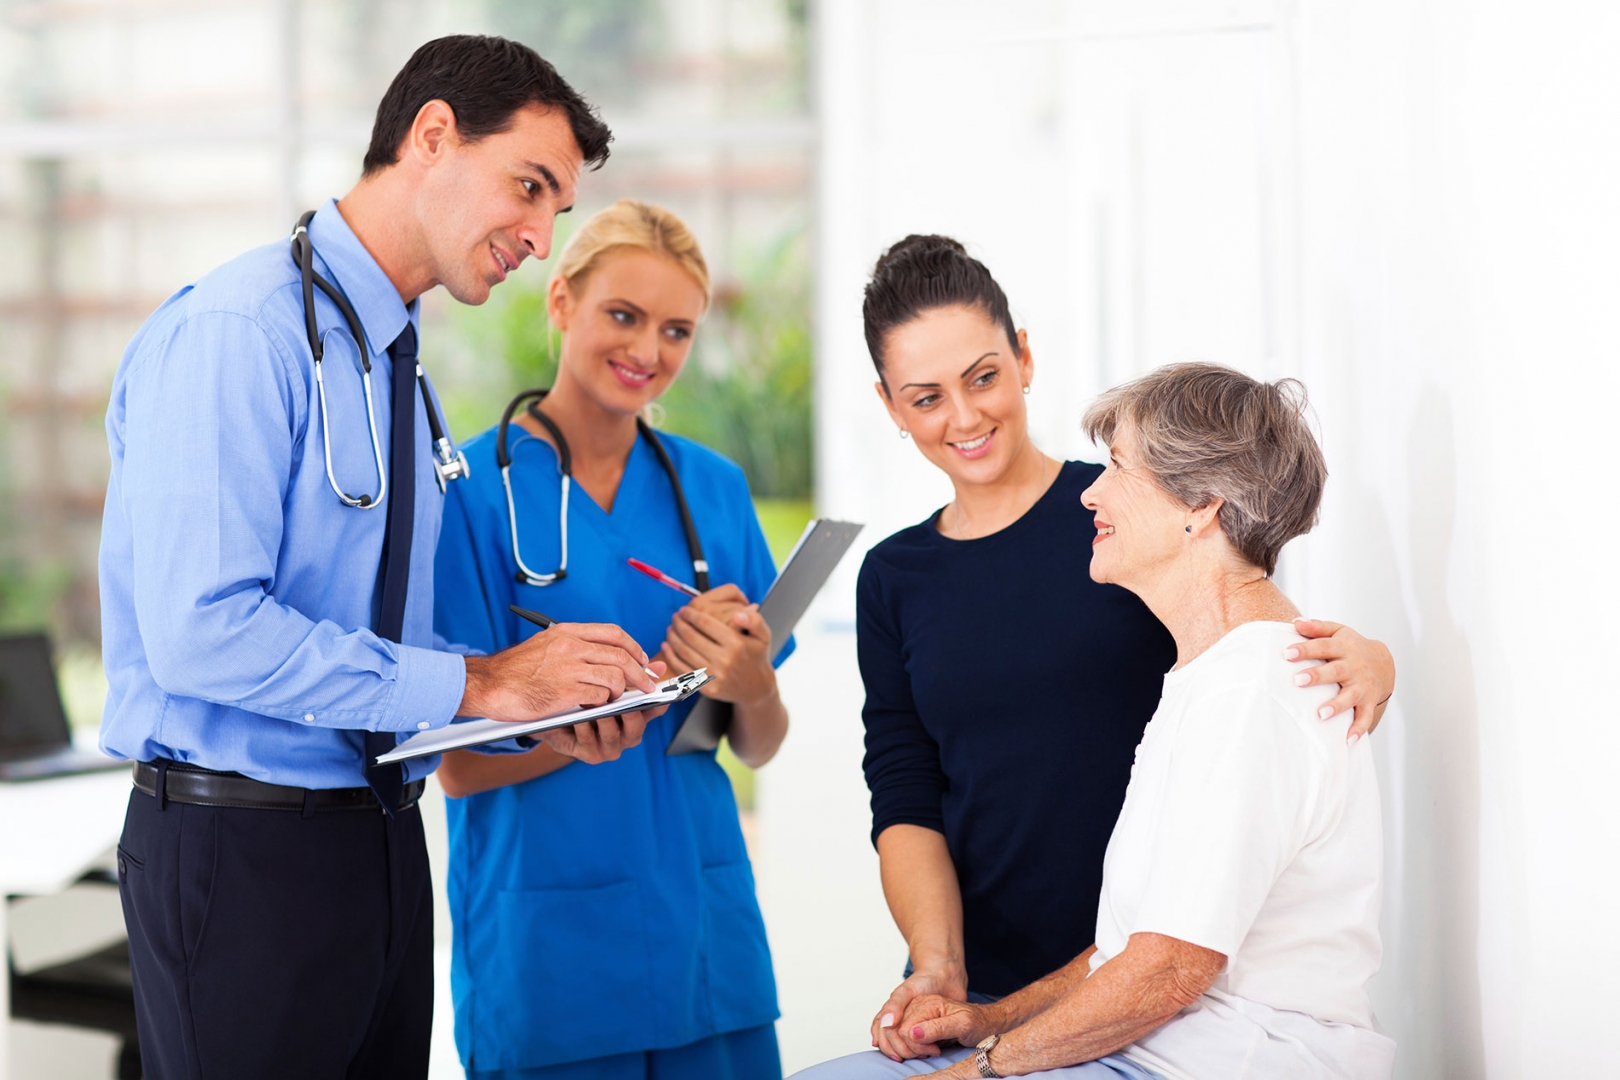 A doctor and nurse meet with a patient